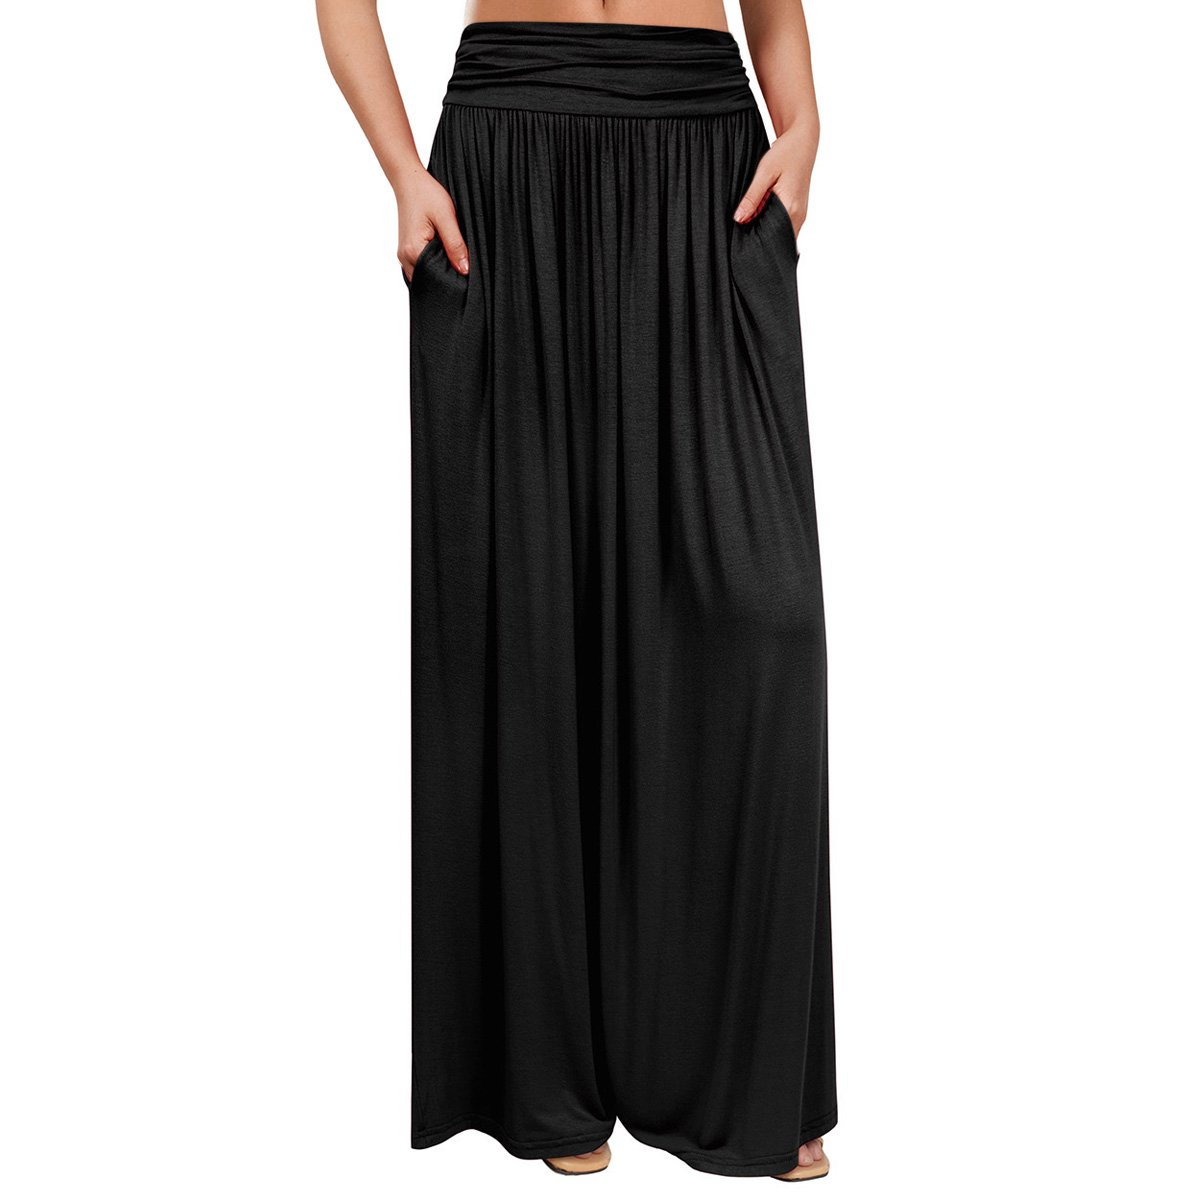 VeryAnn Women's High Waist Fold Over Black Long Maxi Shirring Skirt with Pockets